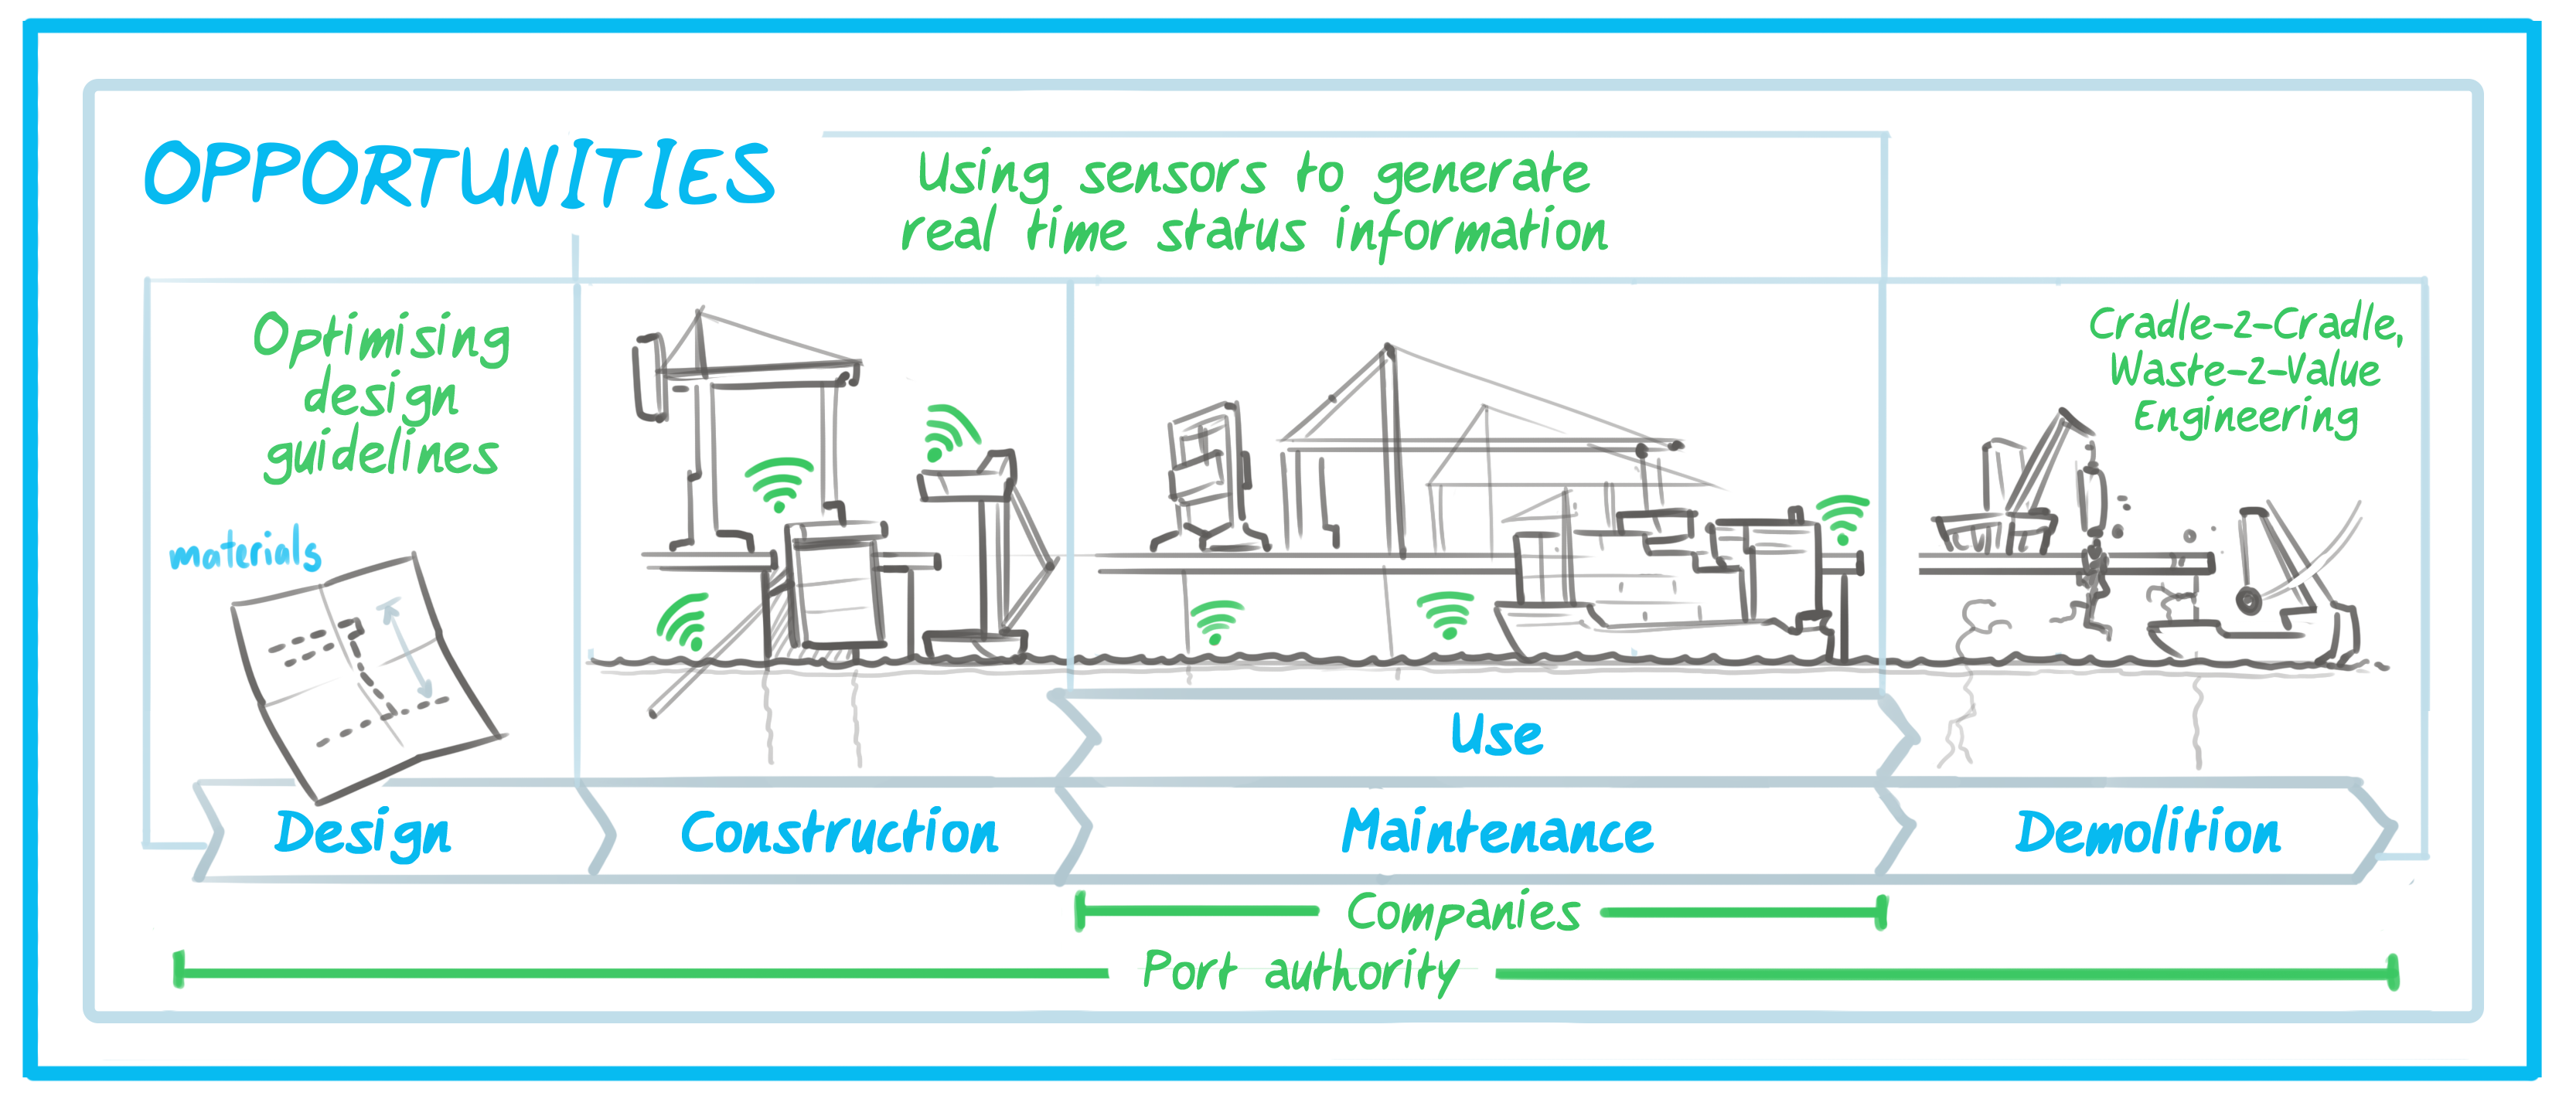 Quay Walls Of The Future With Sensors Providing Data Smart Port Wall Schematic Engineering Diagram Finally Information Provided By Can Be Used In Development And Improvement